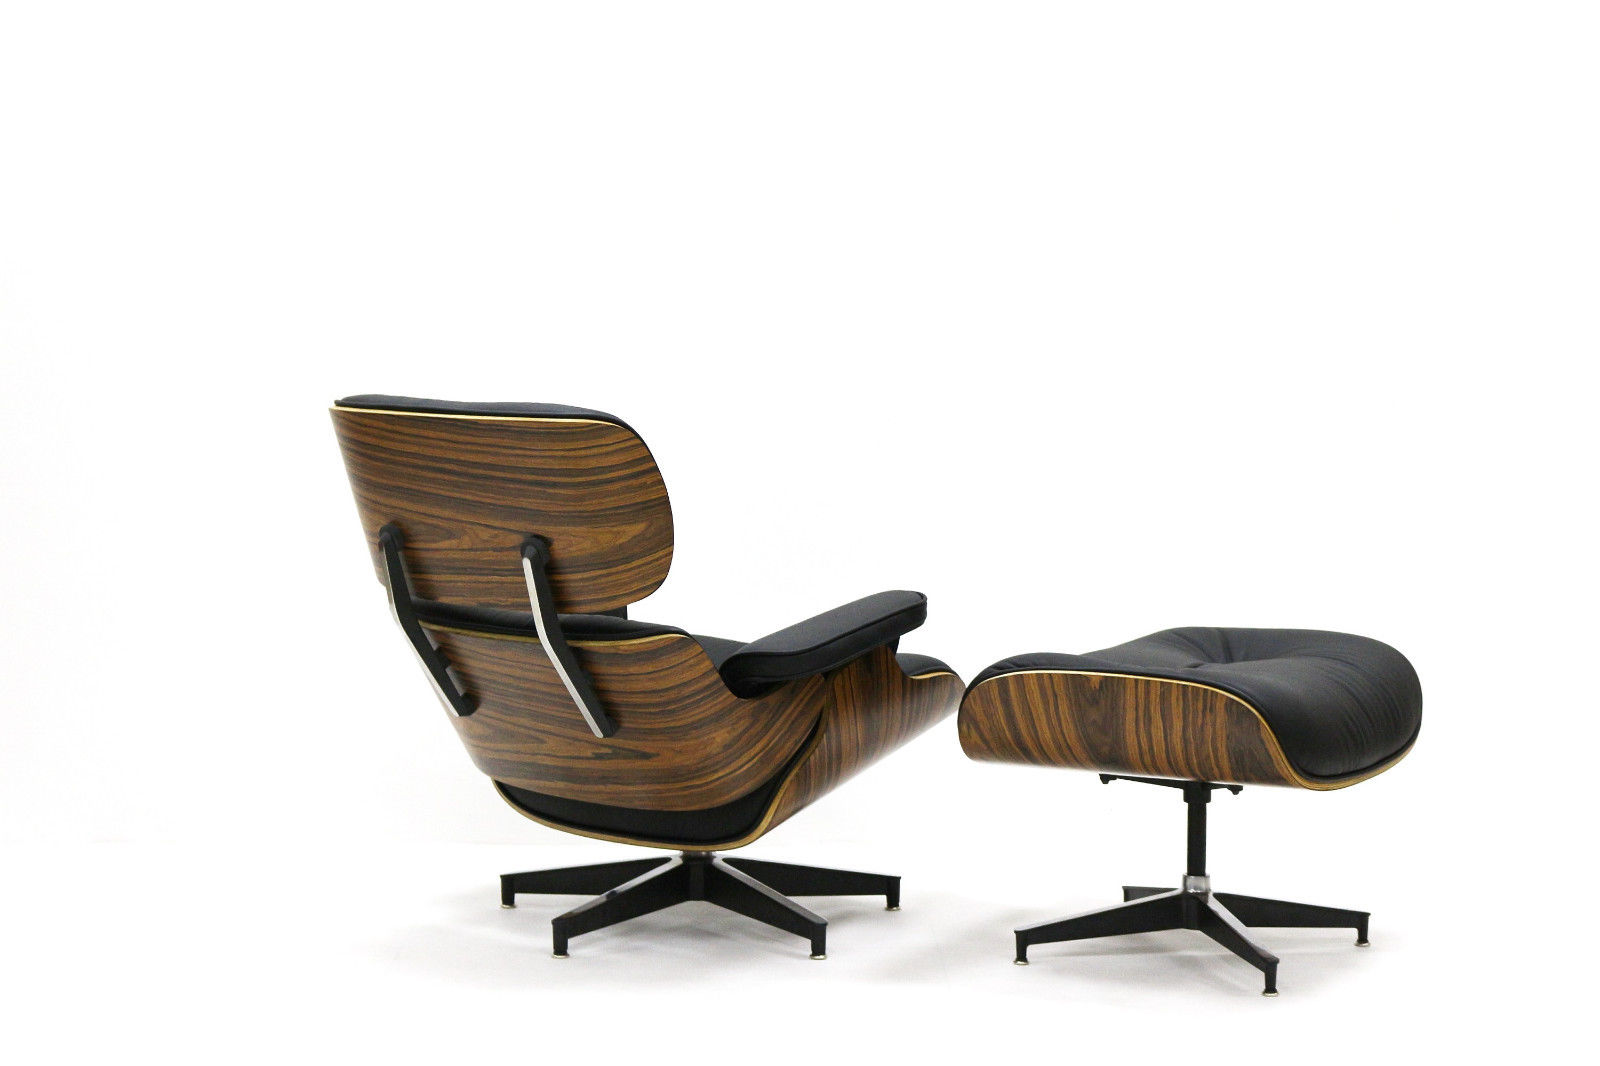 Eames Inspired Lounge Chairs Eames Style Lounge Chair And Ottoman Rosewood Plywood